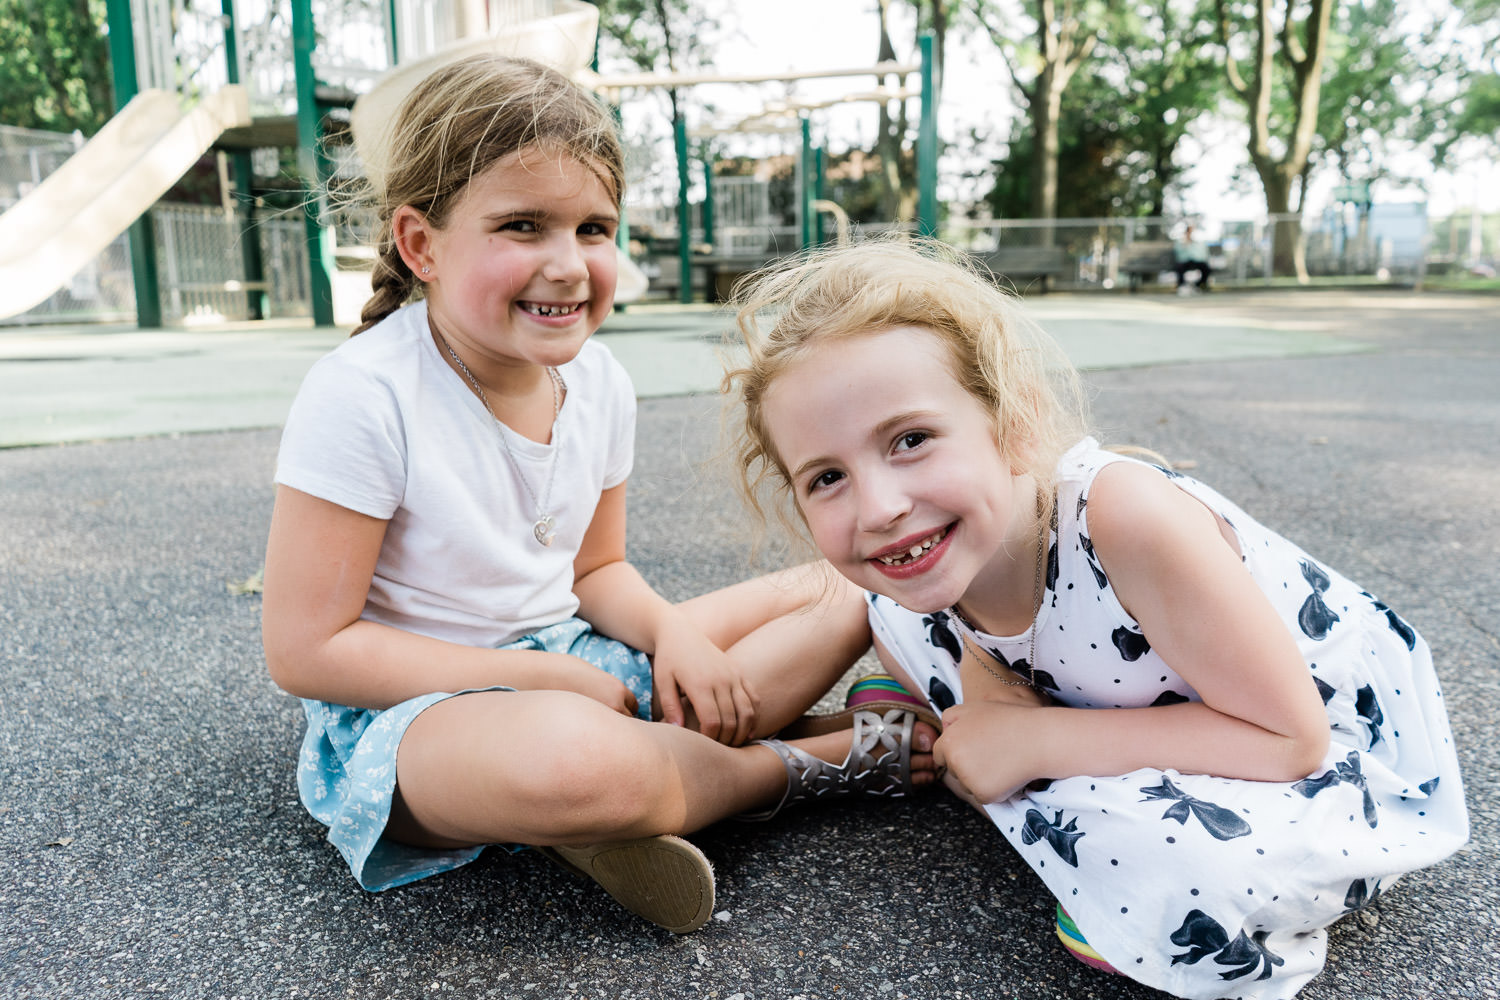 Two little girls sit on the ground at a town park.